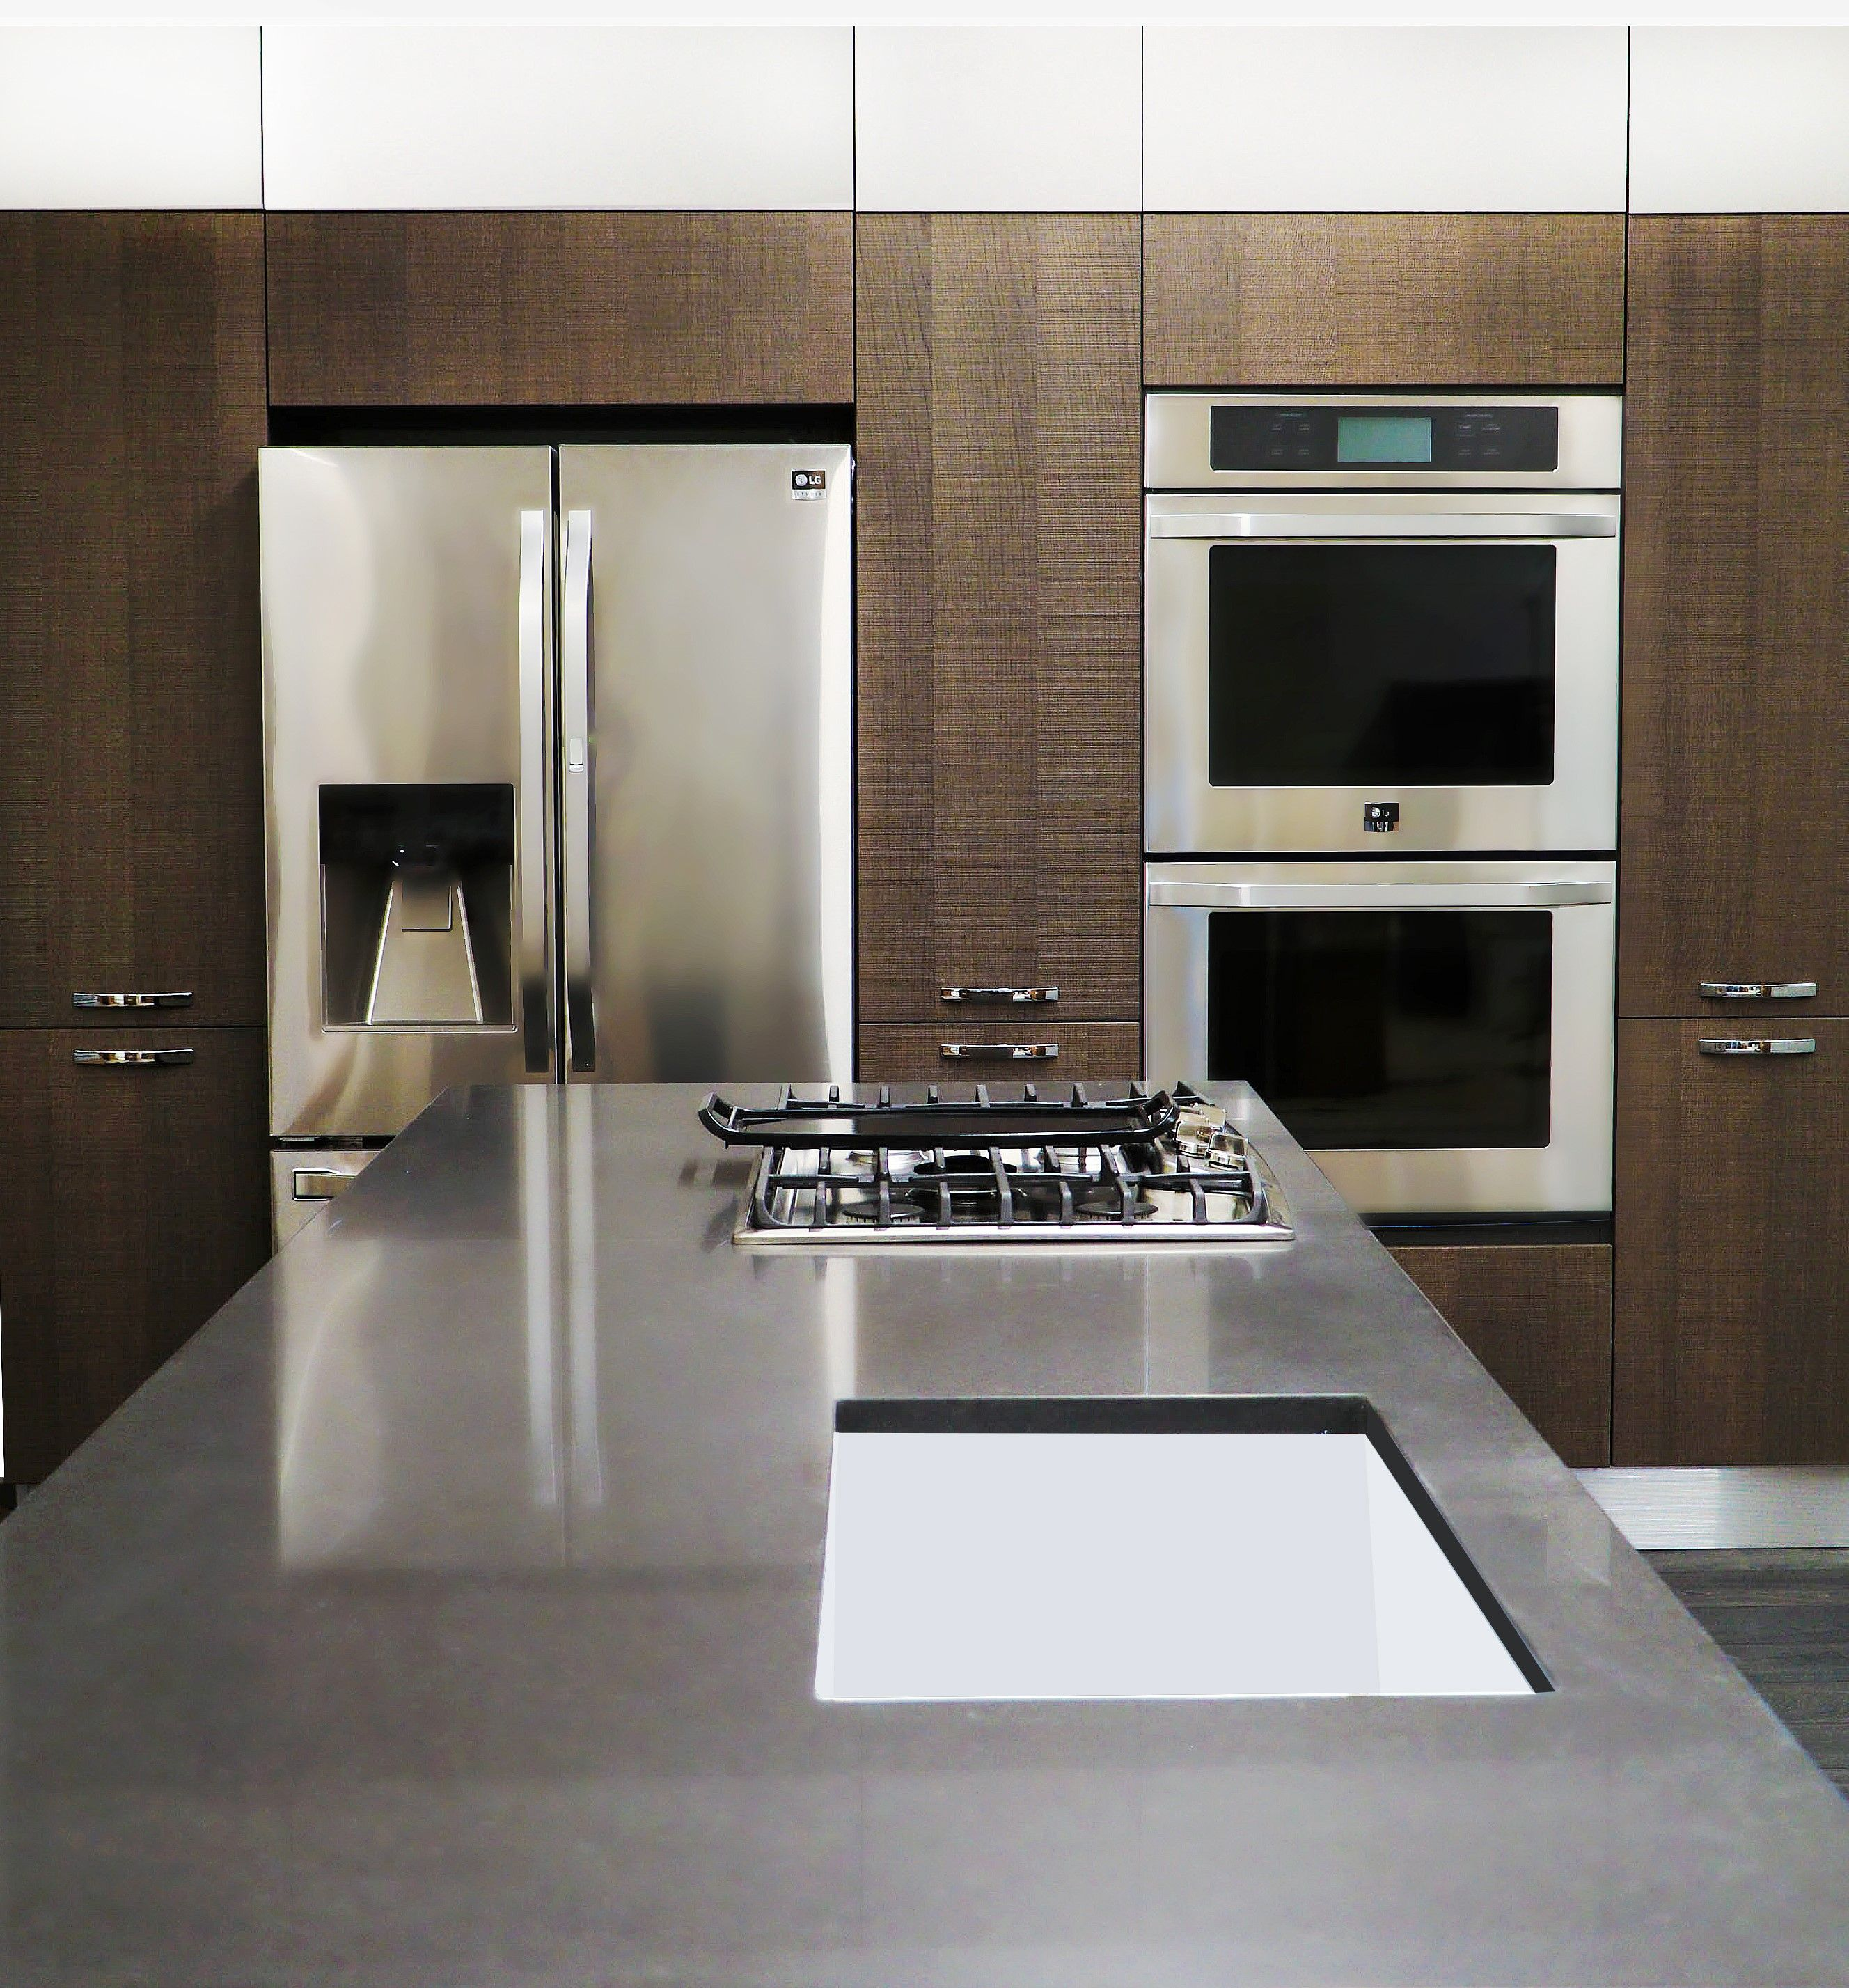 kitchen appliances brooklyn anti fatigue mats scavolini 39s mood collection and lg studio from